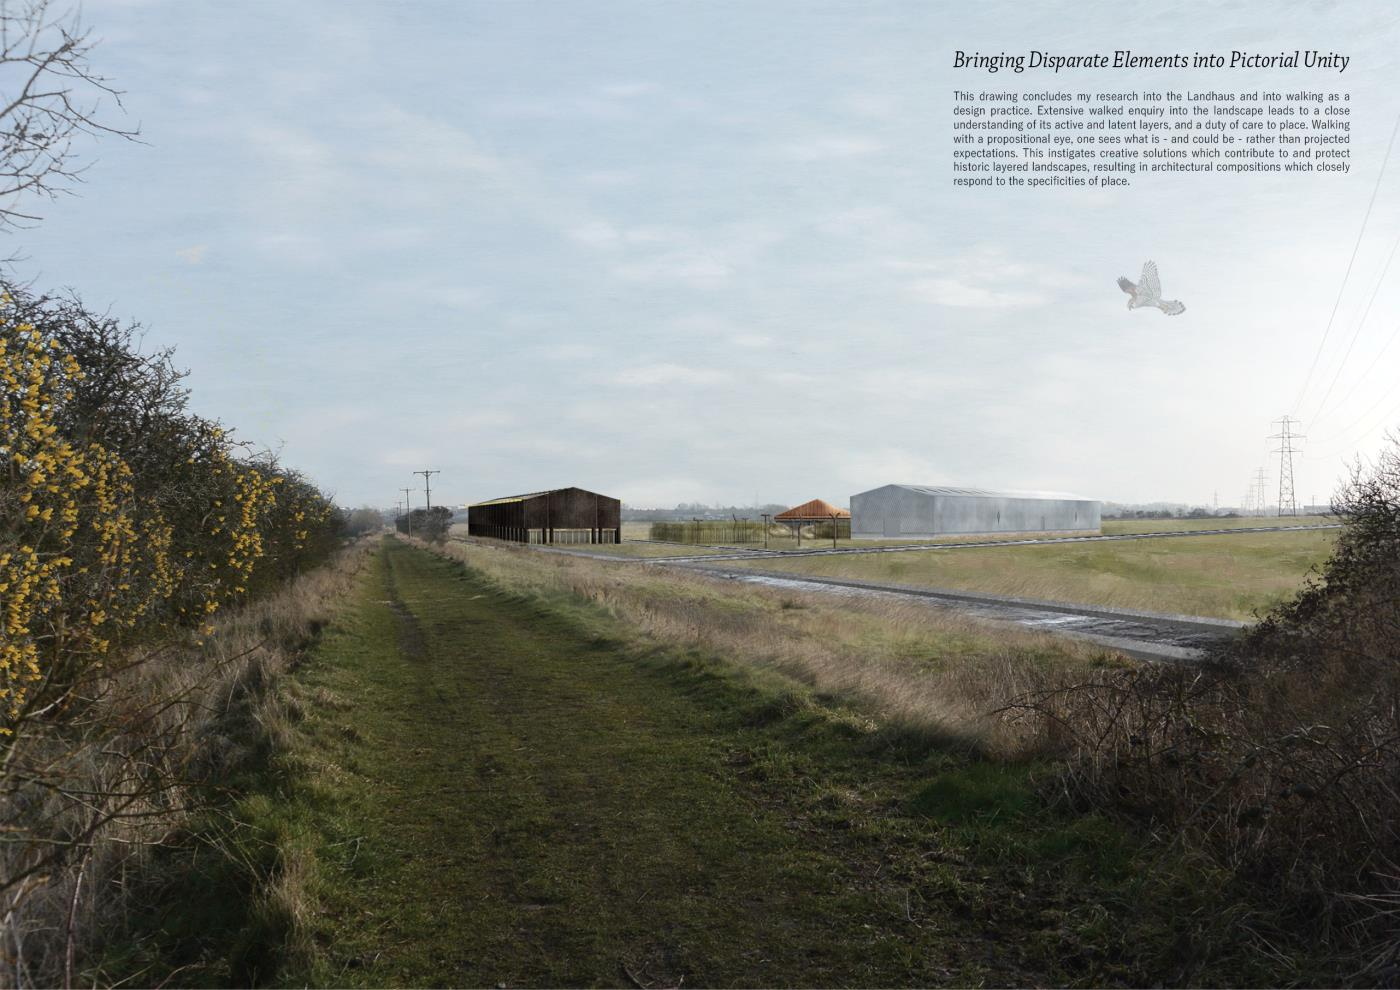 Landhaus: Walking the Landscape as Design Practice